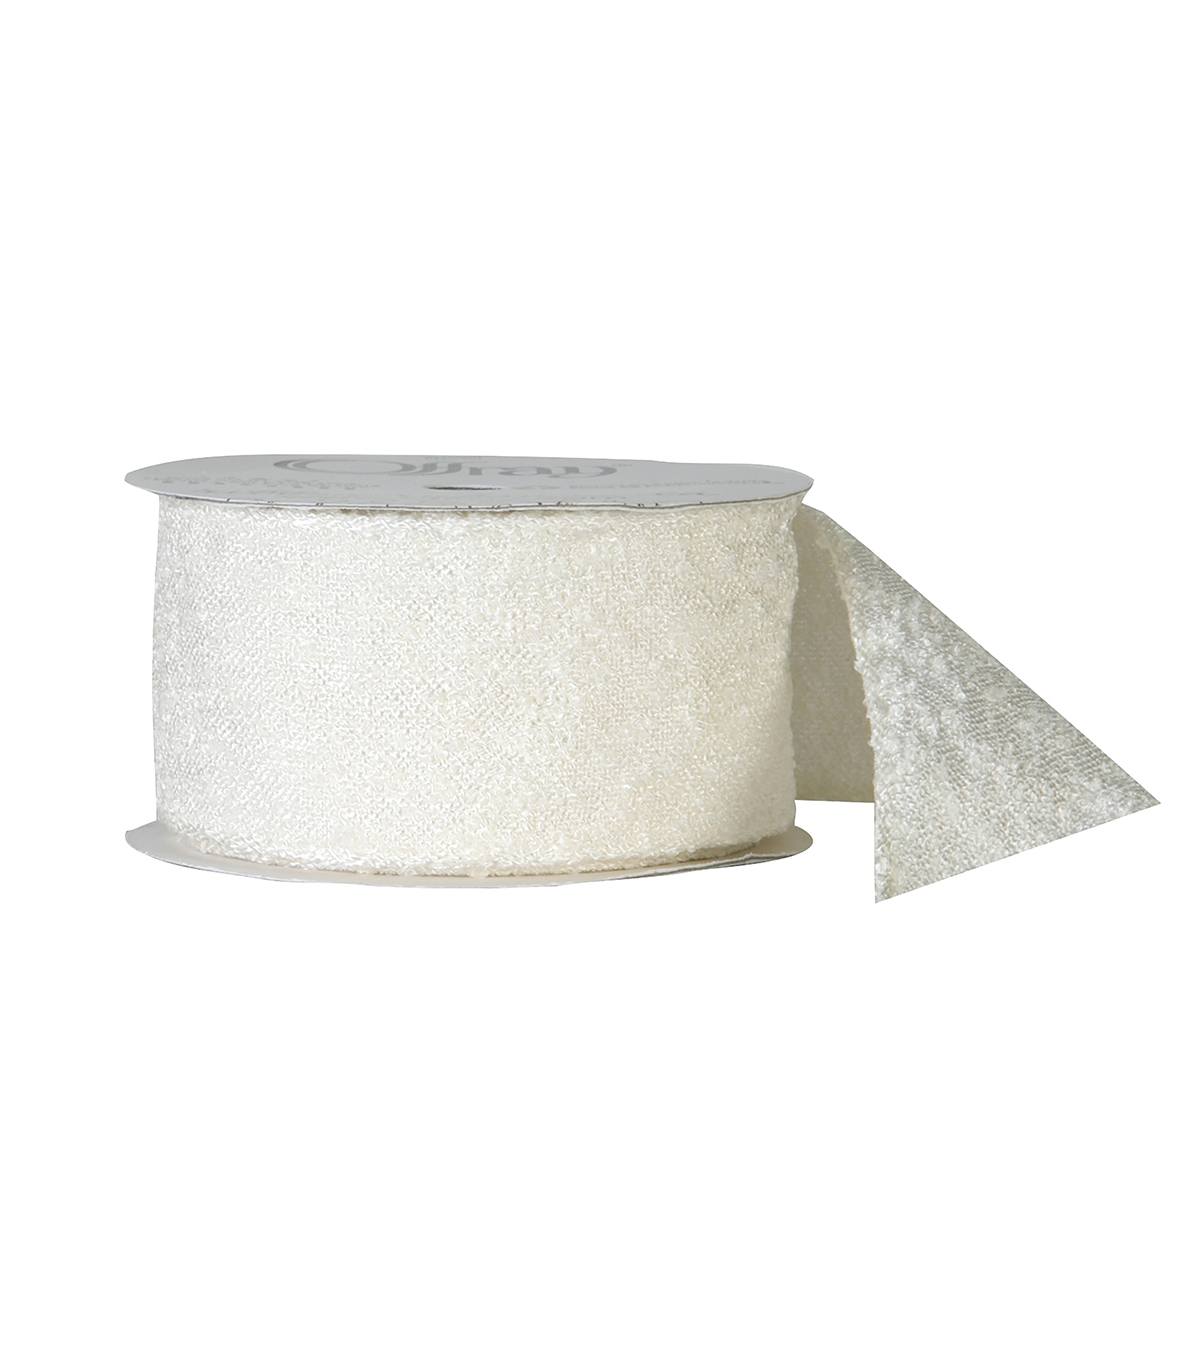 "Offray 1.5""x9' Woven Texture Natural Solid Ribbon-Antique White"